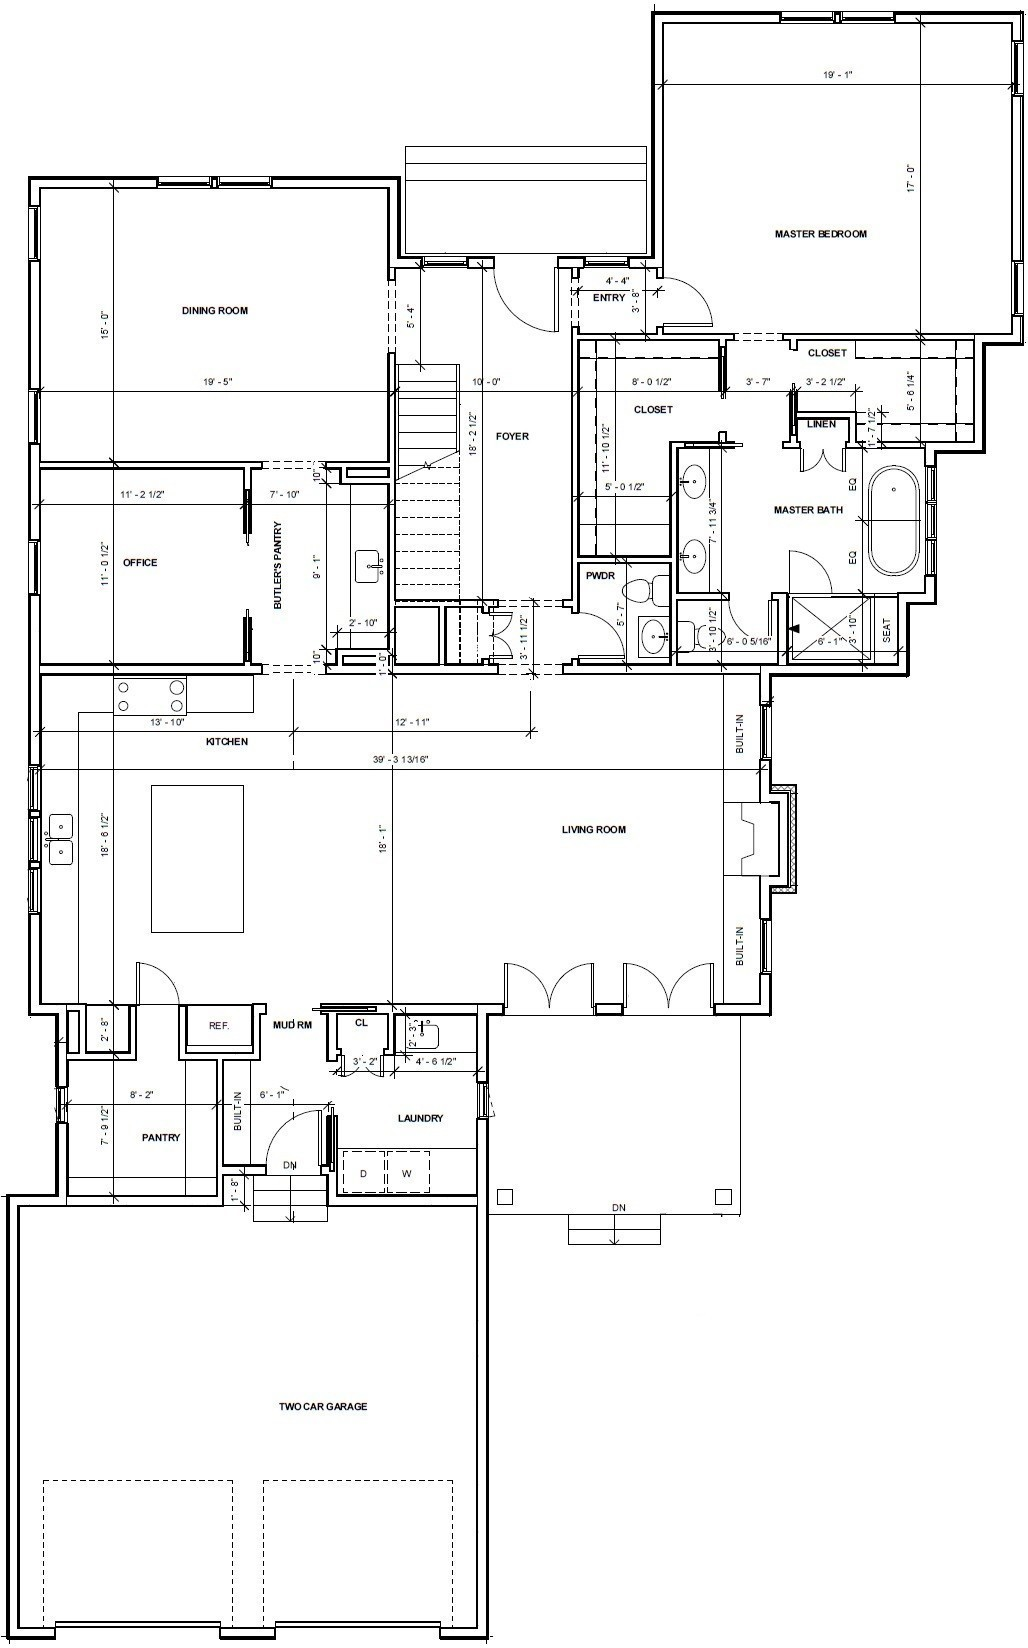 Over $100 less per Sq Ft than new Westhaven homes!  Seconds from the new Mack Hatcher extension. Zoned Franklin High, Grassland Middle, Walnut Grove Elem.10 ft ceilings downstairs and upstairs. Wood Clad Windows. Sand & Finish Hardwoods everywhere but 2nd Beds. Huge Secondary Bedrooms, 2 with en suite baths.  Massive storage closets w/ wood shelving.  In-Ceiling Speakers. Prewired for Security Cameras. Private Office Space. No detail overlooked!